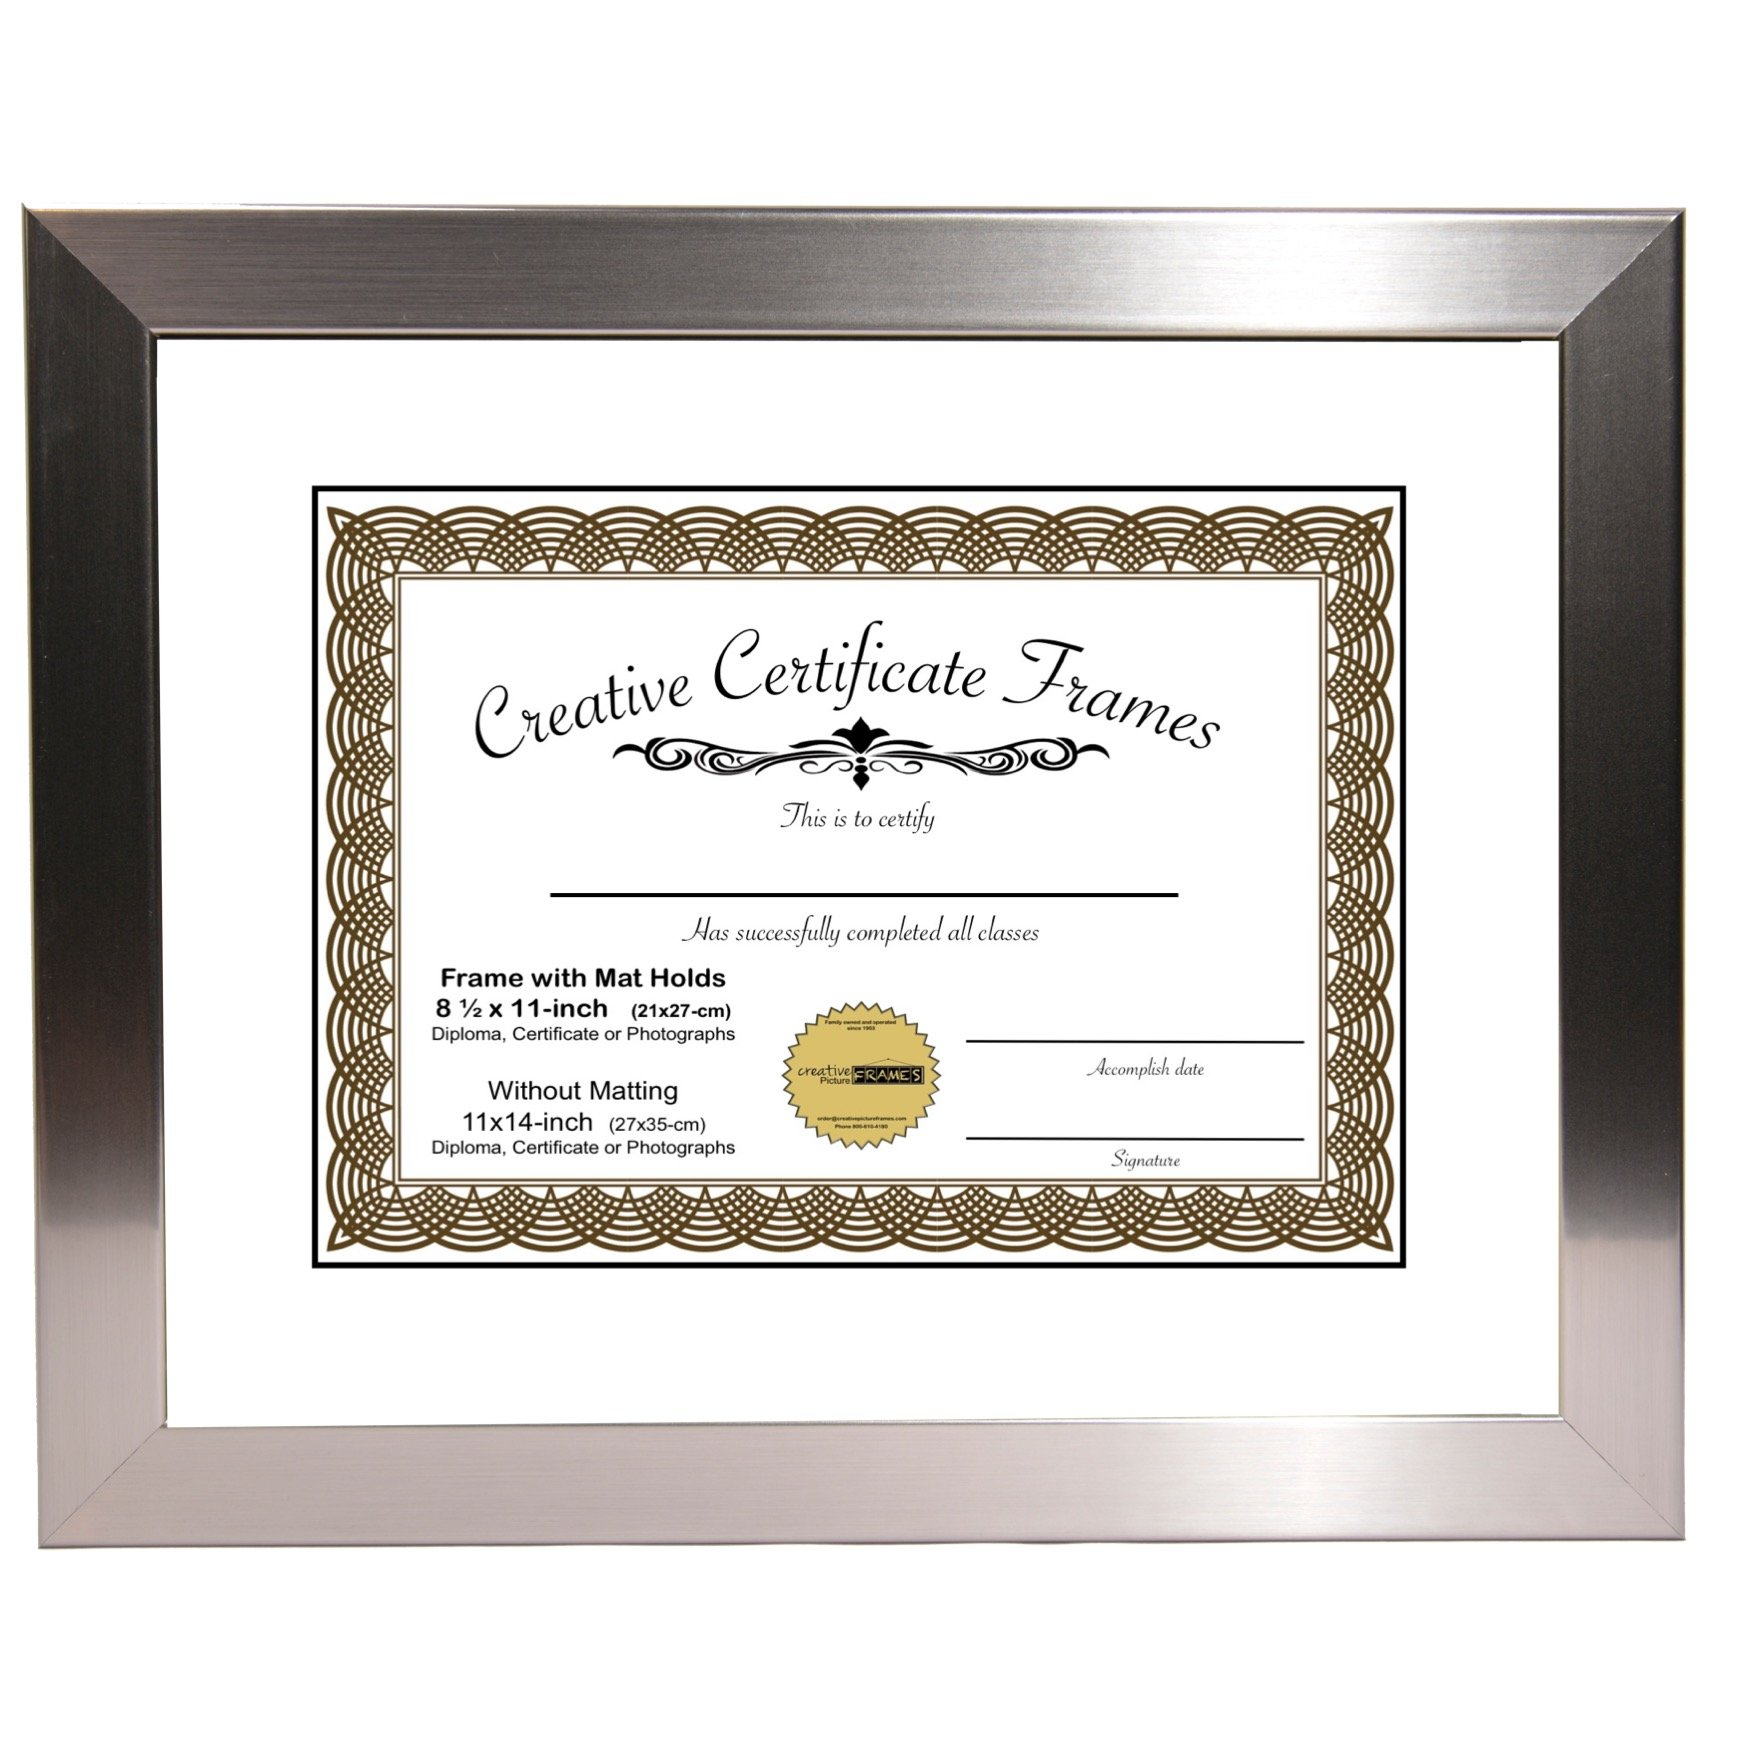 CreativePF [11x14ss-w] Stainless Steel Finish Document Frame Displays 8.5'' by 11'' with Mat or 11'' by 14'' Without mat Includes Stand & Wall Hanger by Creative Picture Frames